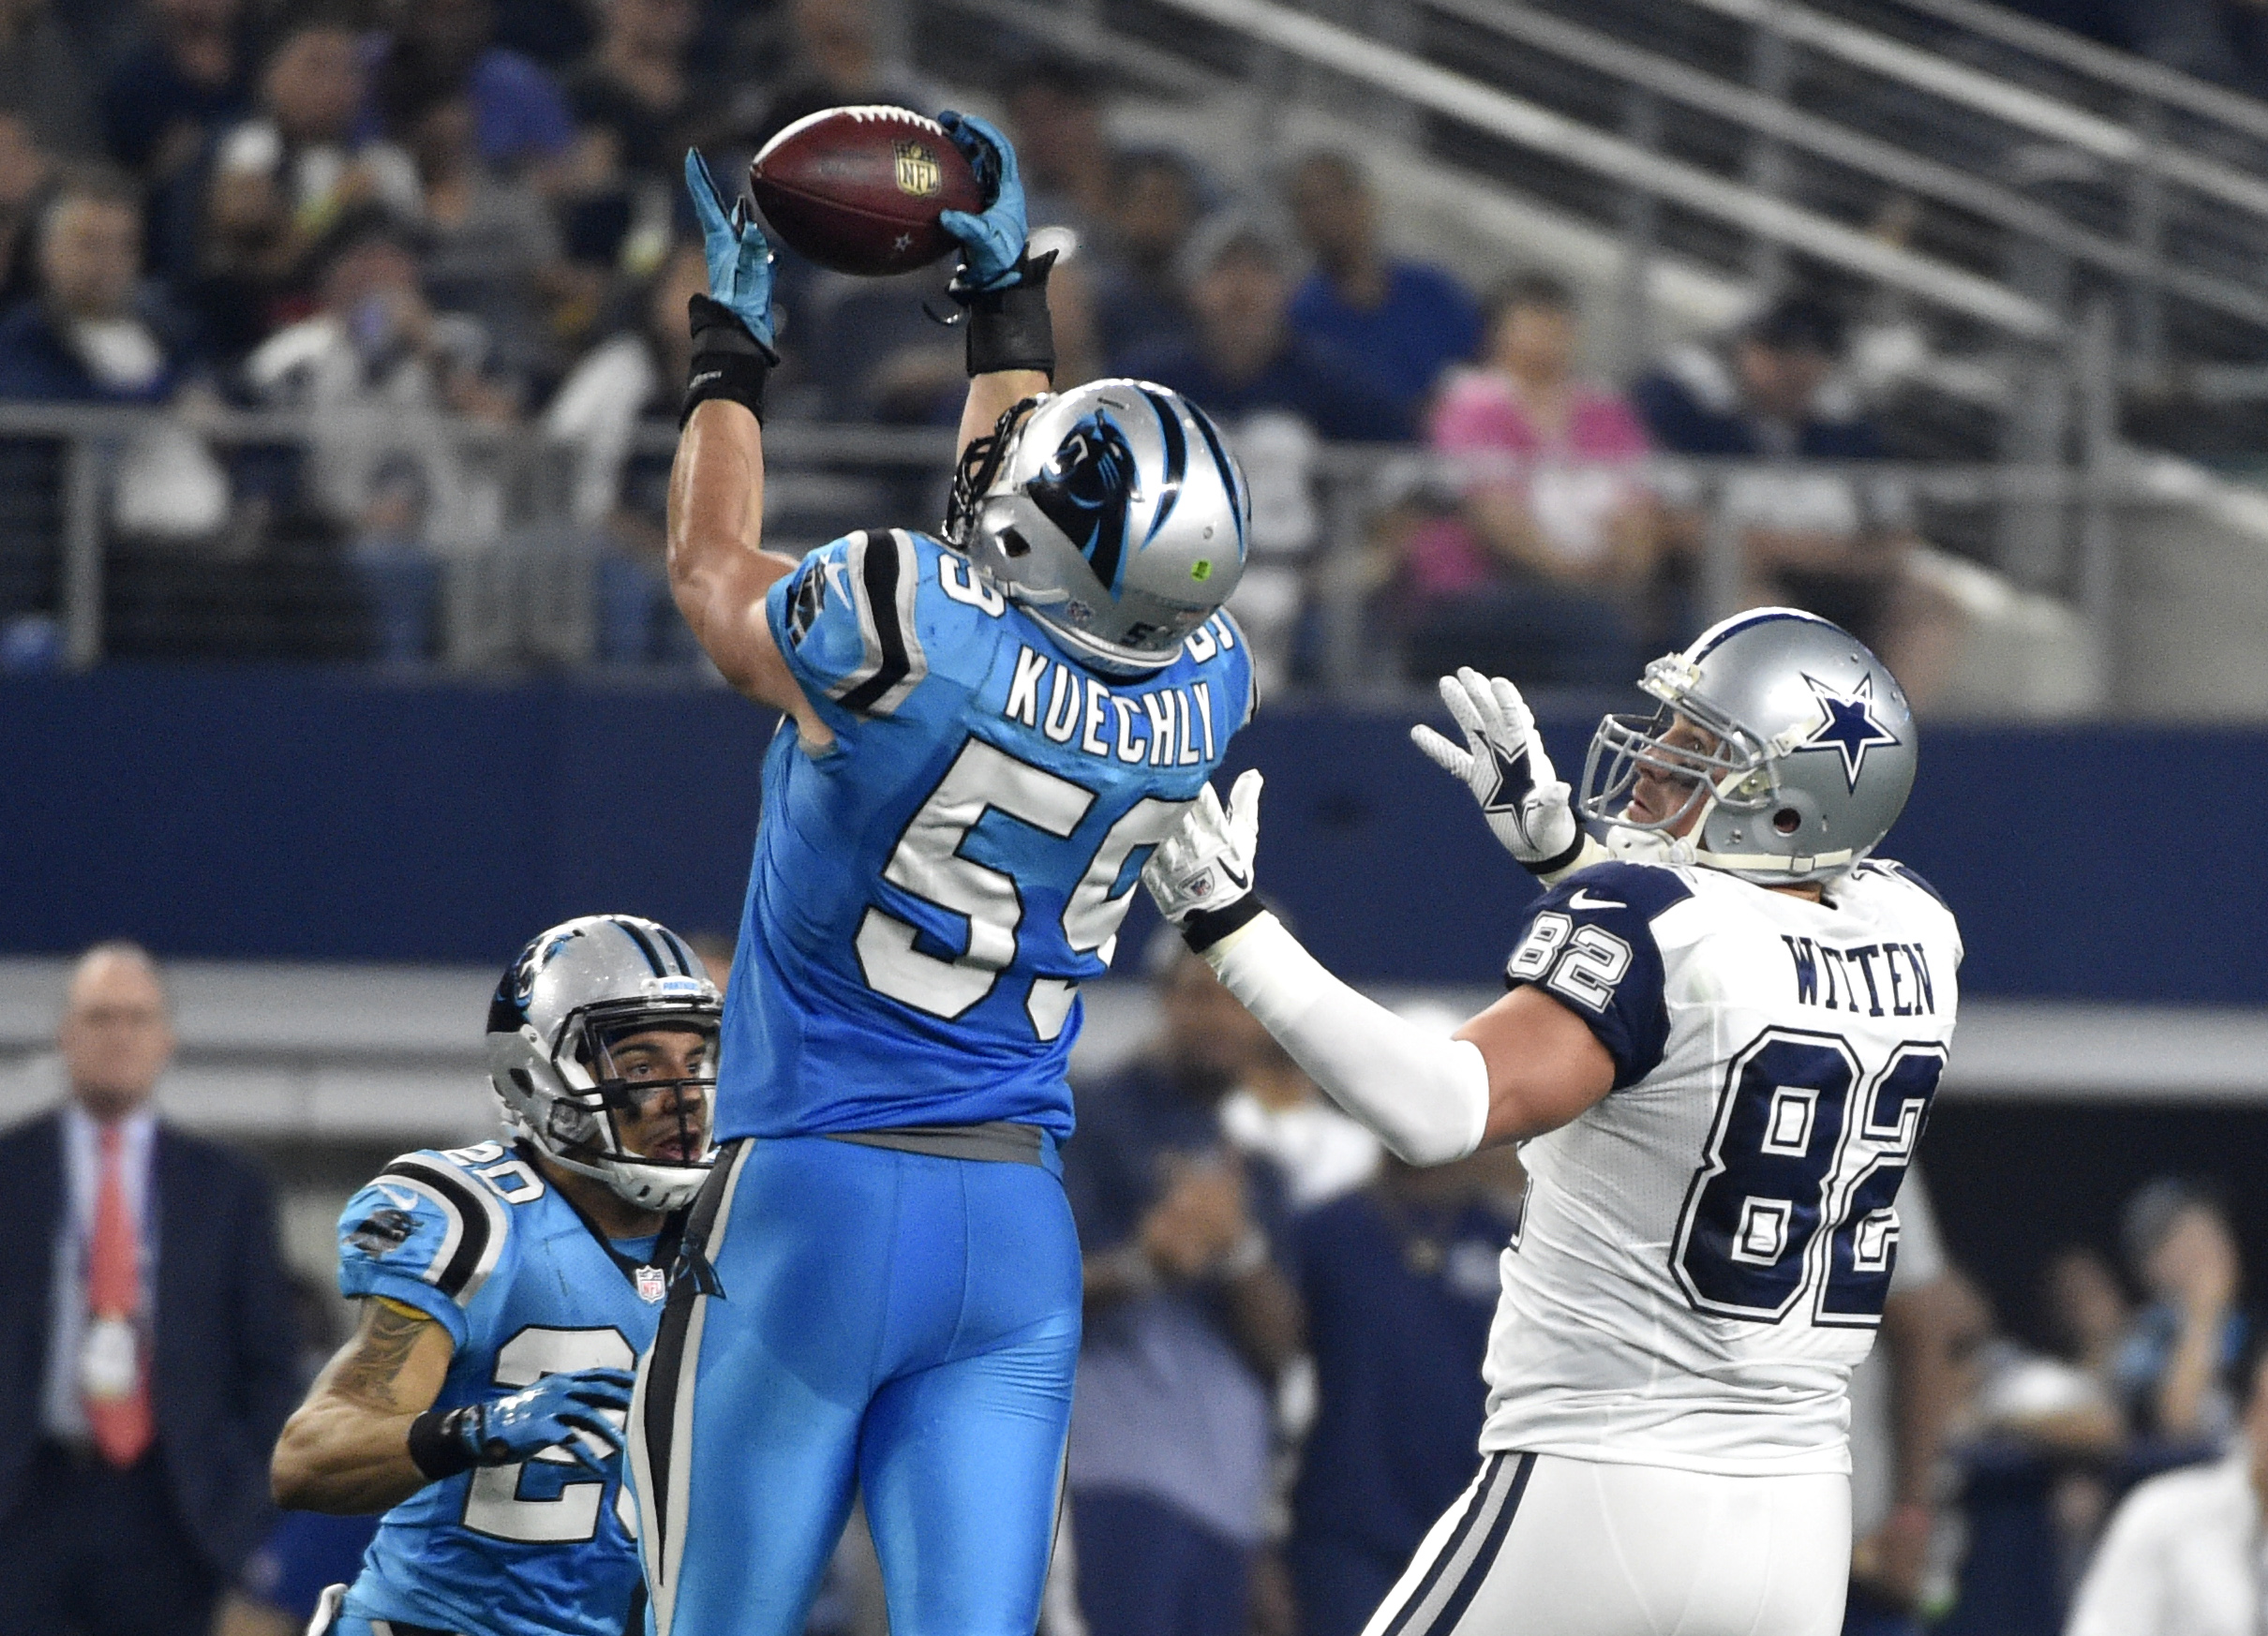 Carolina Panthers middle linebacker Luke Kuechly (59) intercepts a pass intended for Dallas Cowboys tight end Jason Witten (82) as Kurt Coleman (20) watches during the first half of an NFL football game, Thursday Nov. 26, 2015, in Arlington, Texas. Kuechl